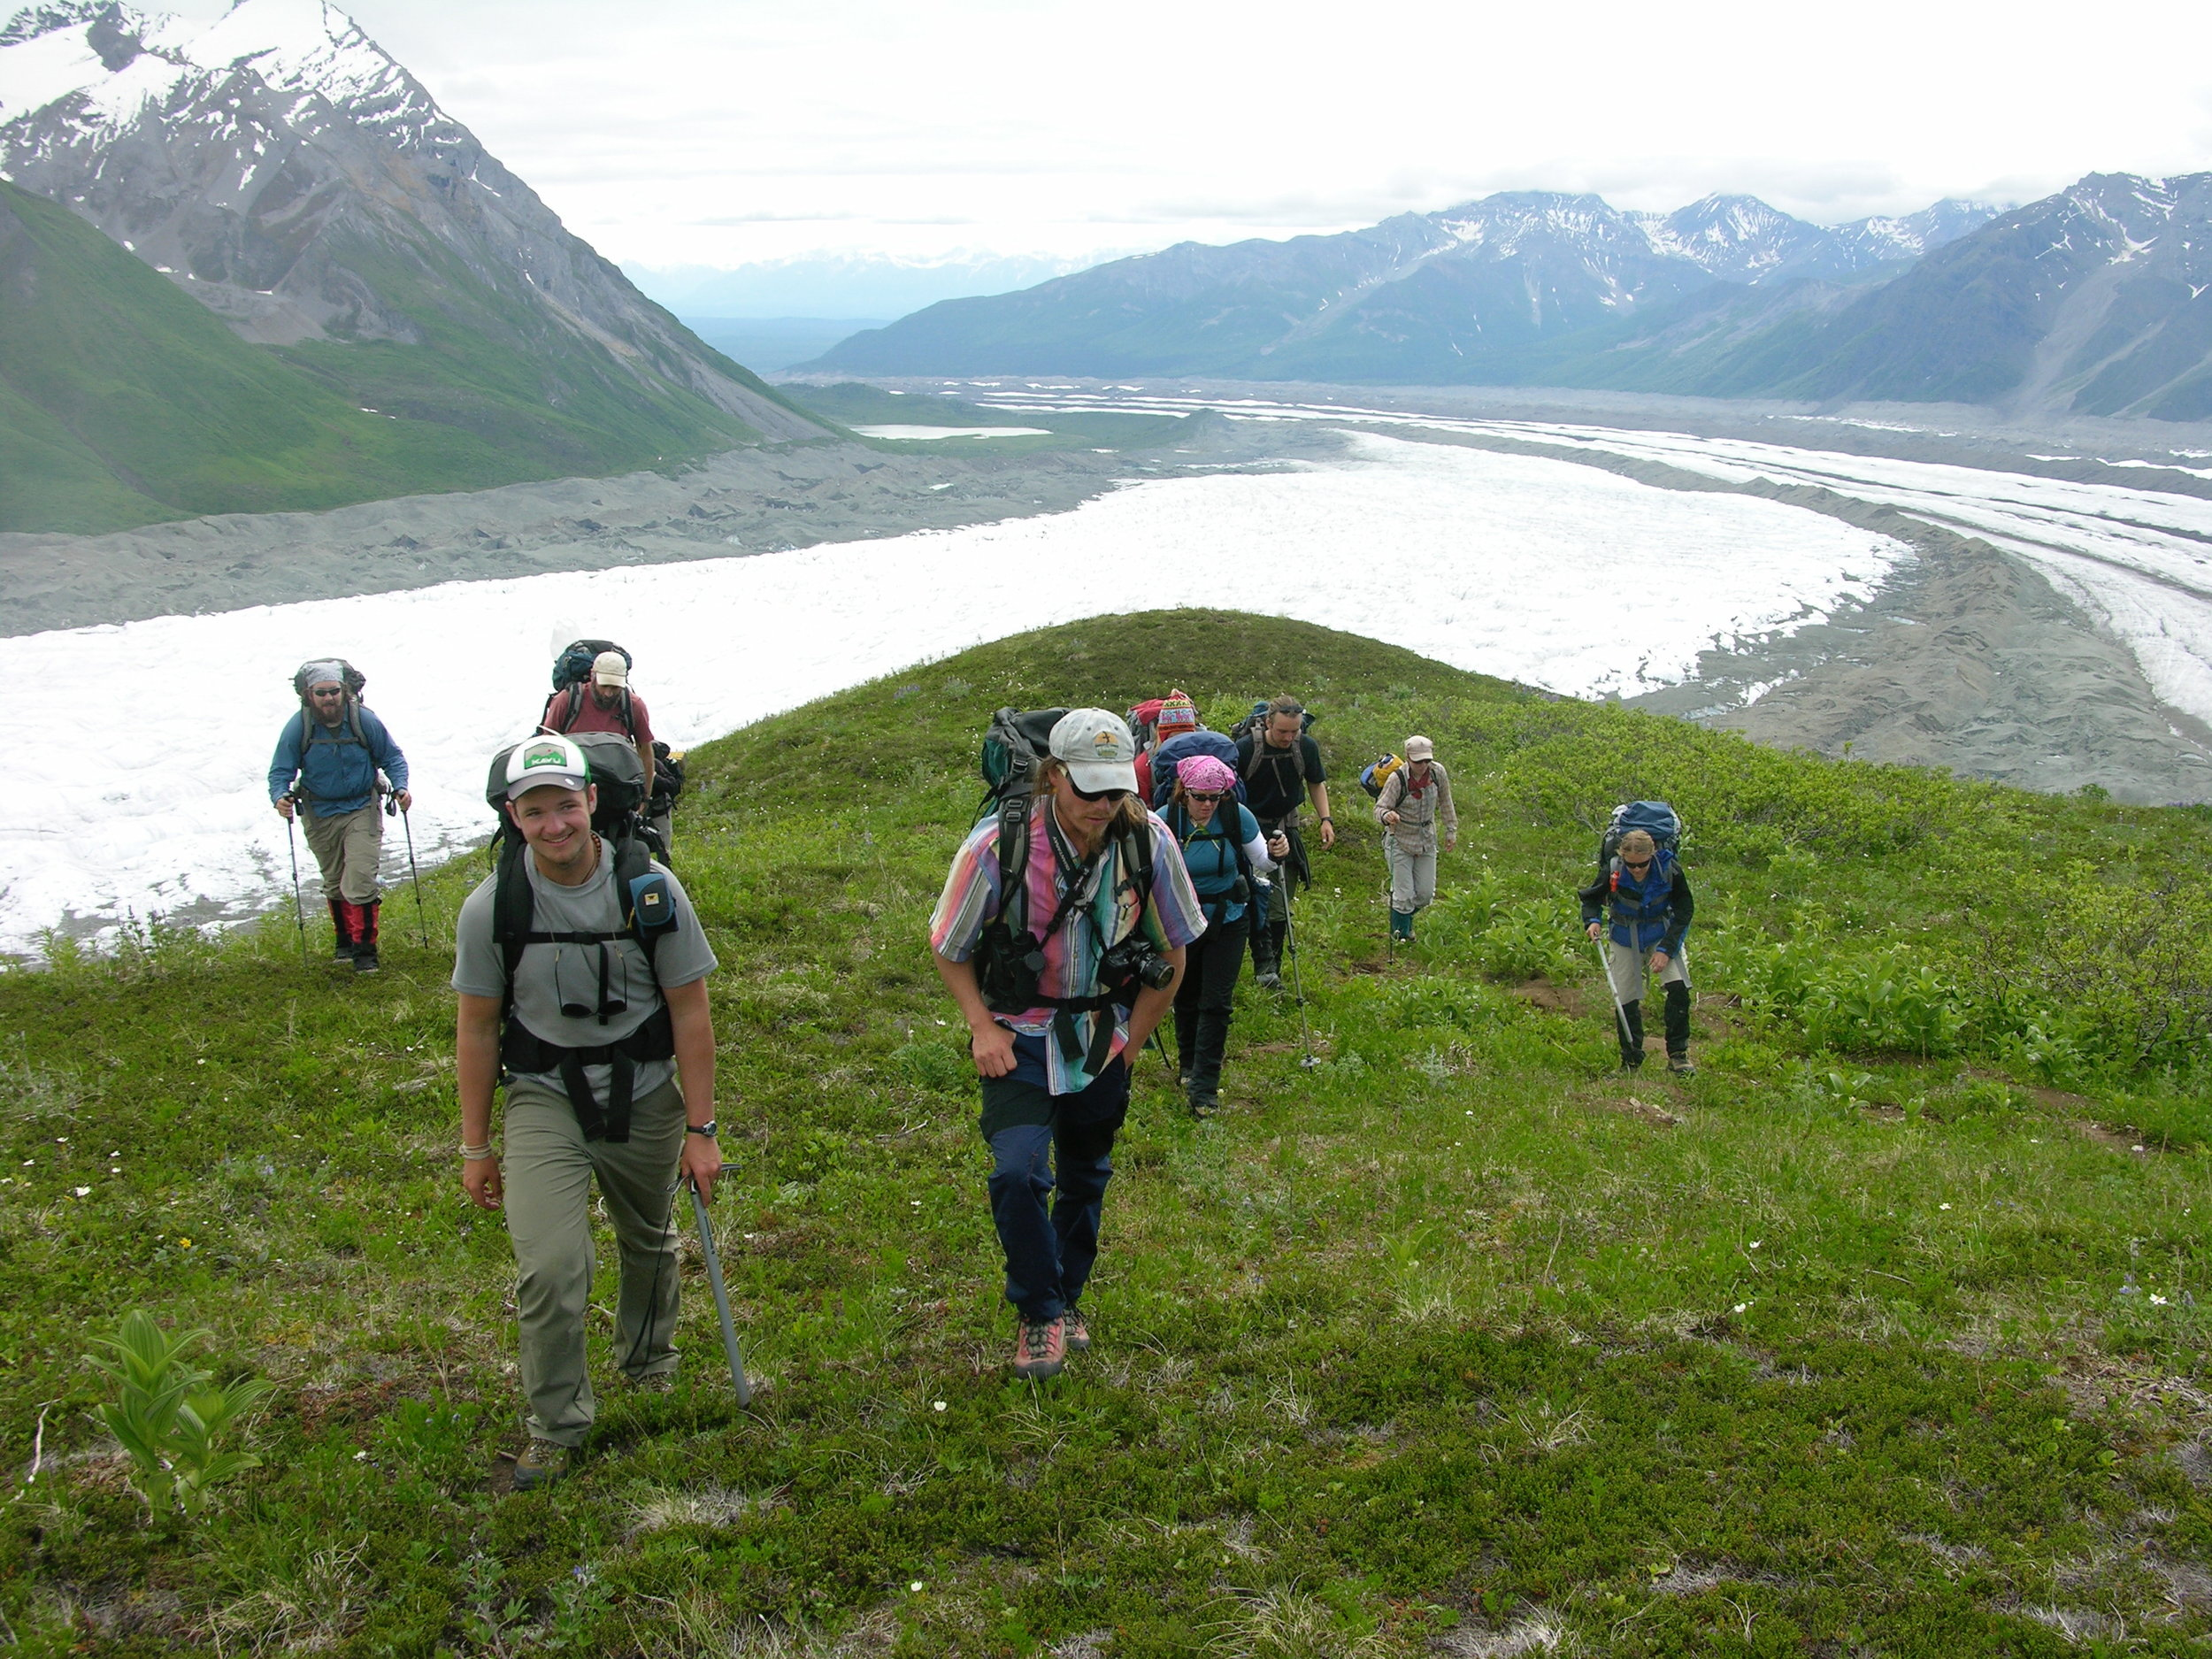 Students and faculty hike on an alpine ridge to a new campsite